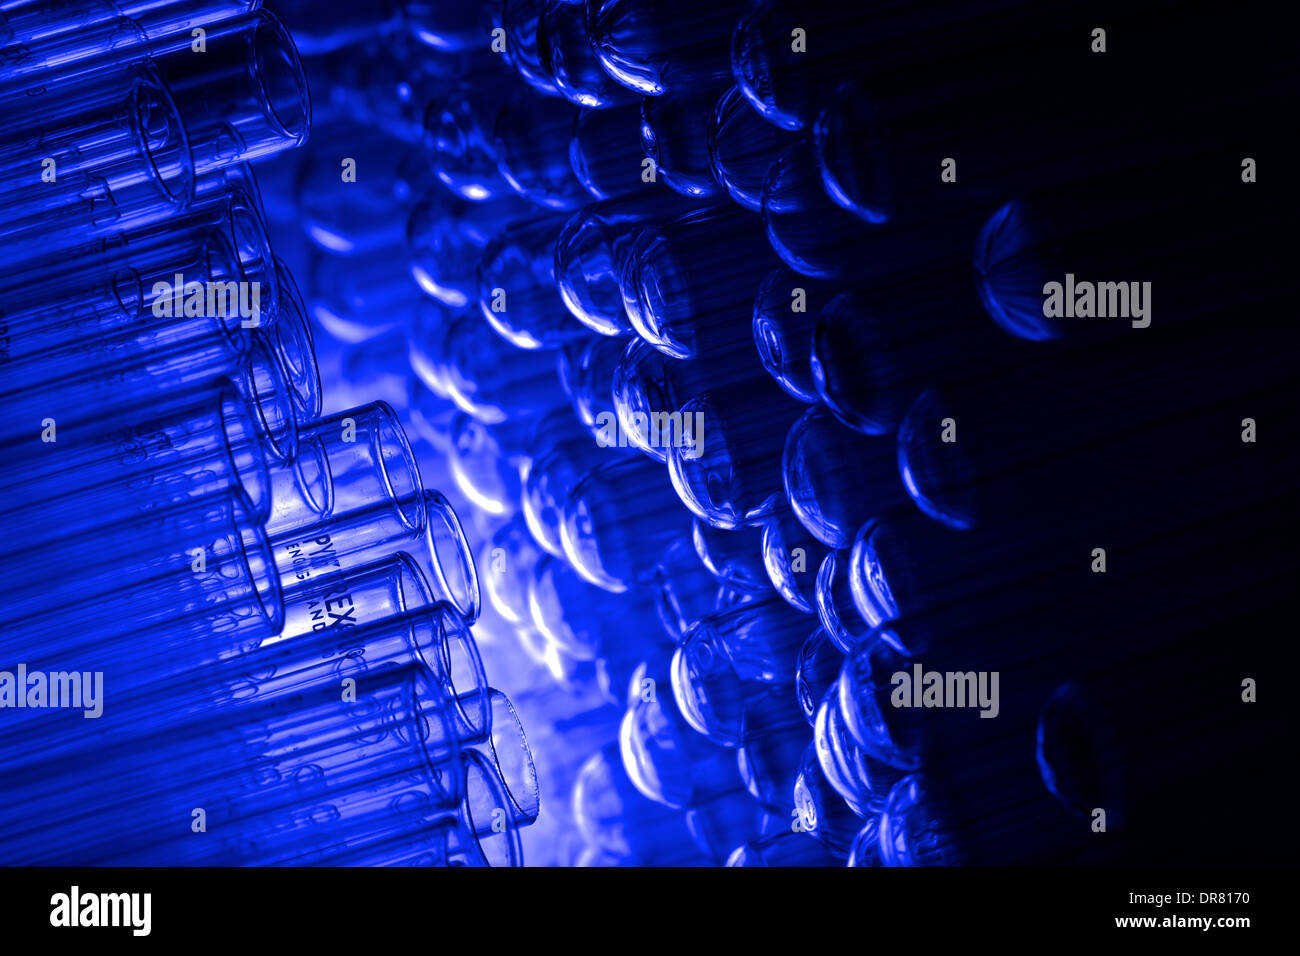 test tube bottles stacked in a drawer - Stock Image